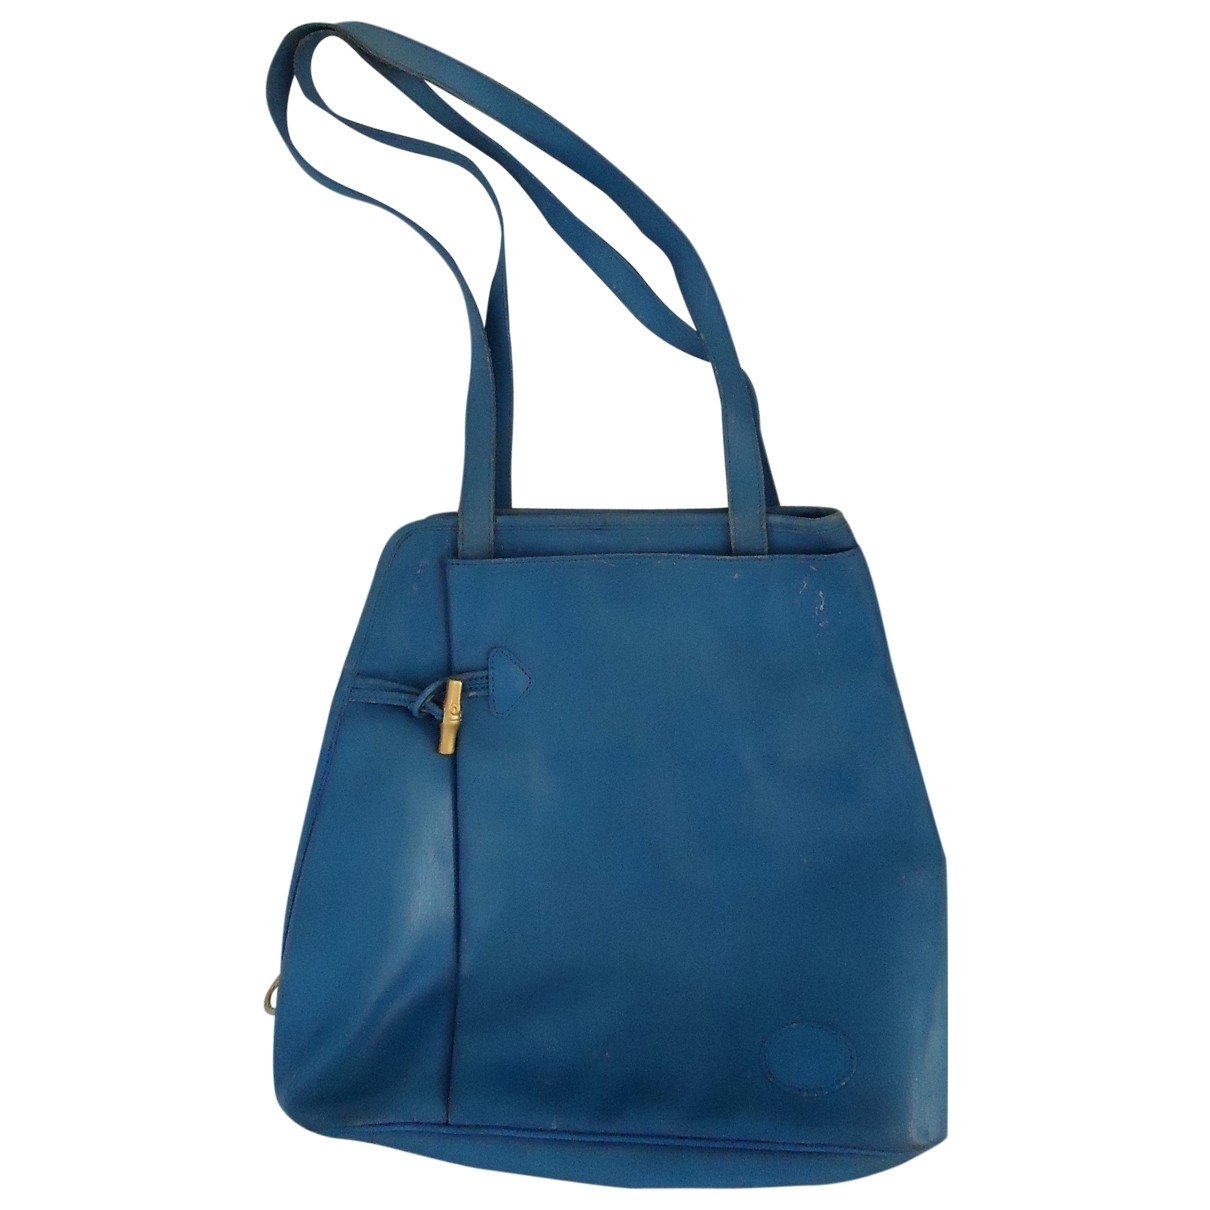 Longchamp \N Blue Leather handbag for Women \N